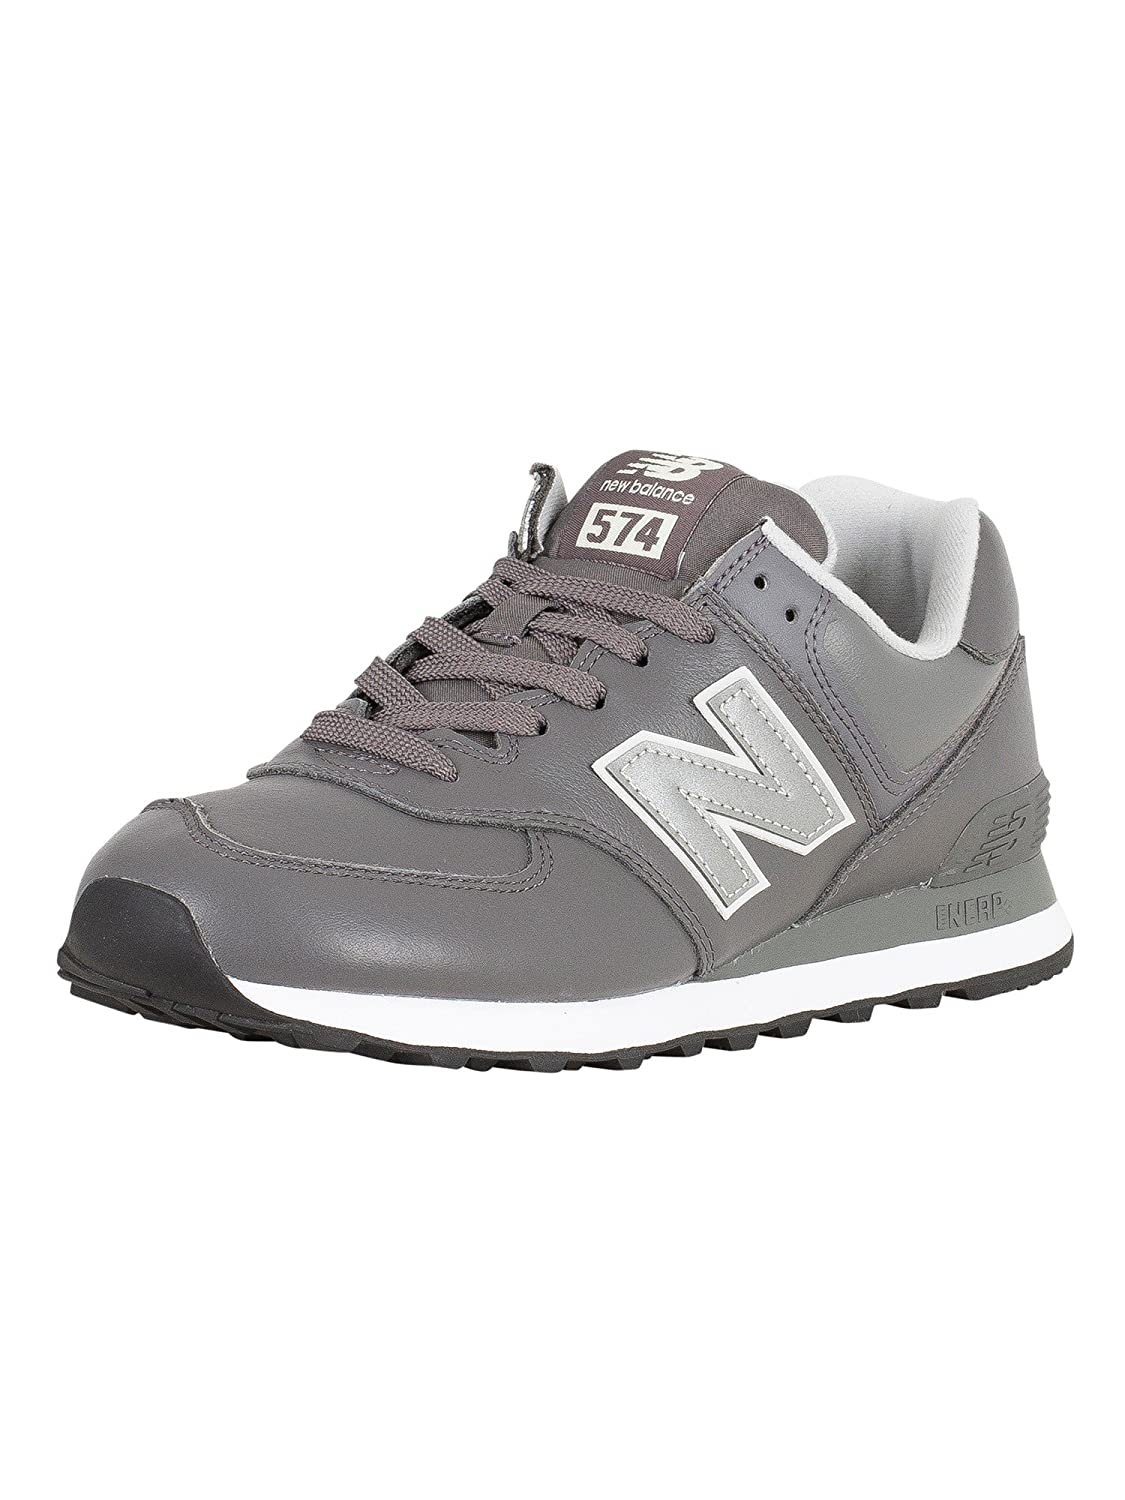 new balance men's trainers 574